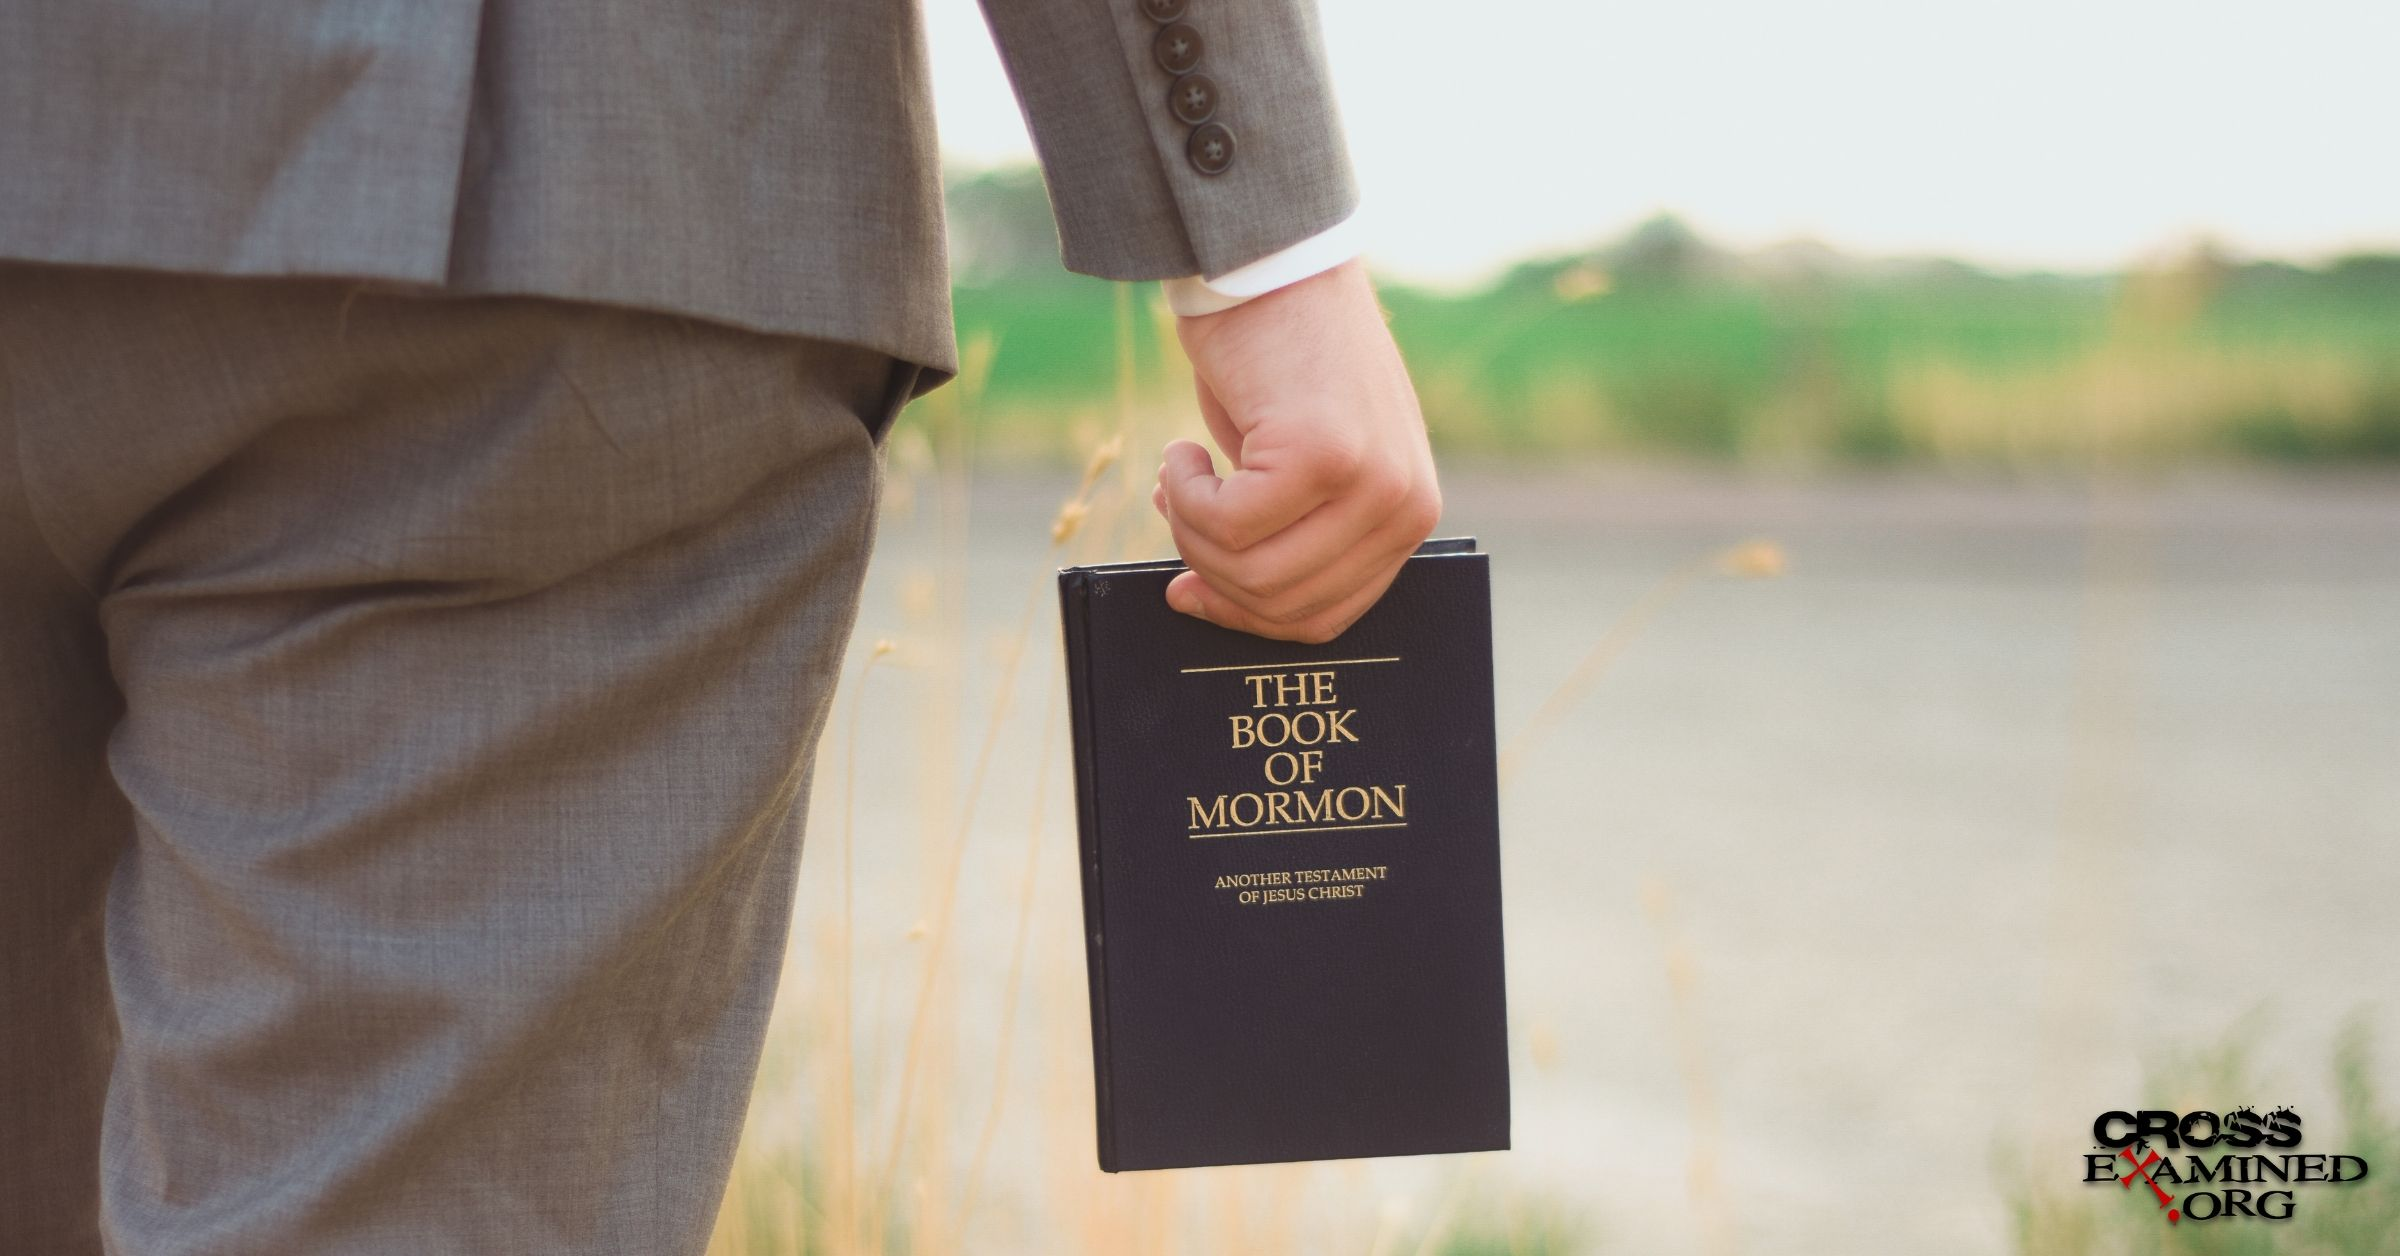 Are Mormon doctrines supported by philosophy, science and history